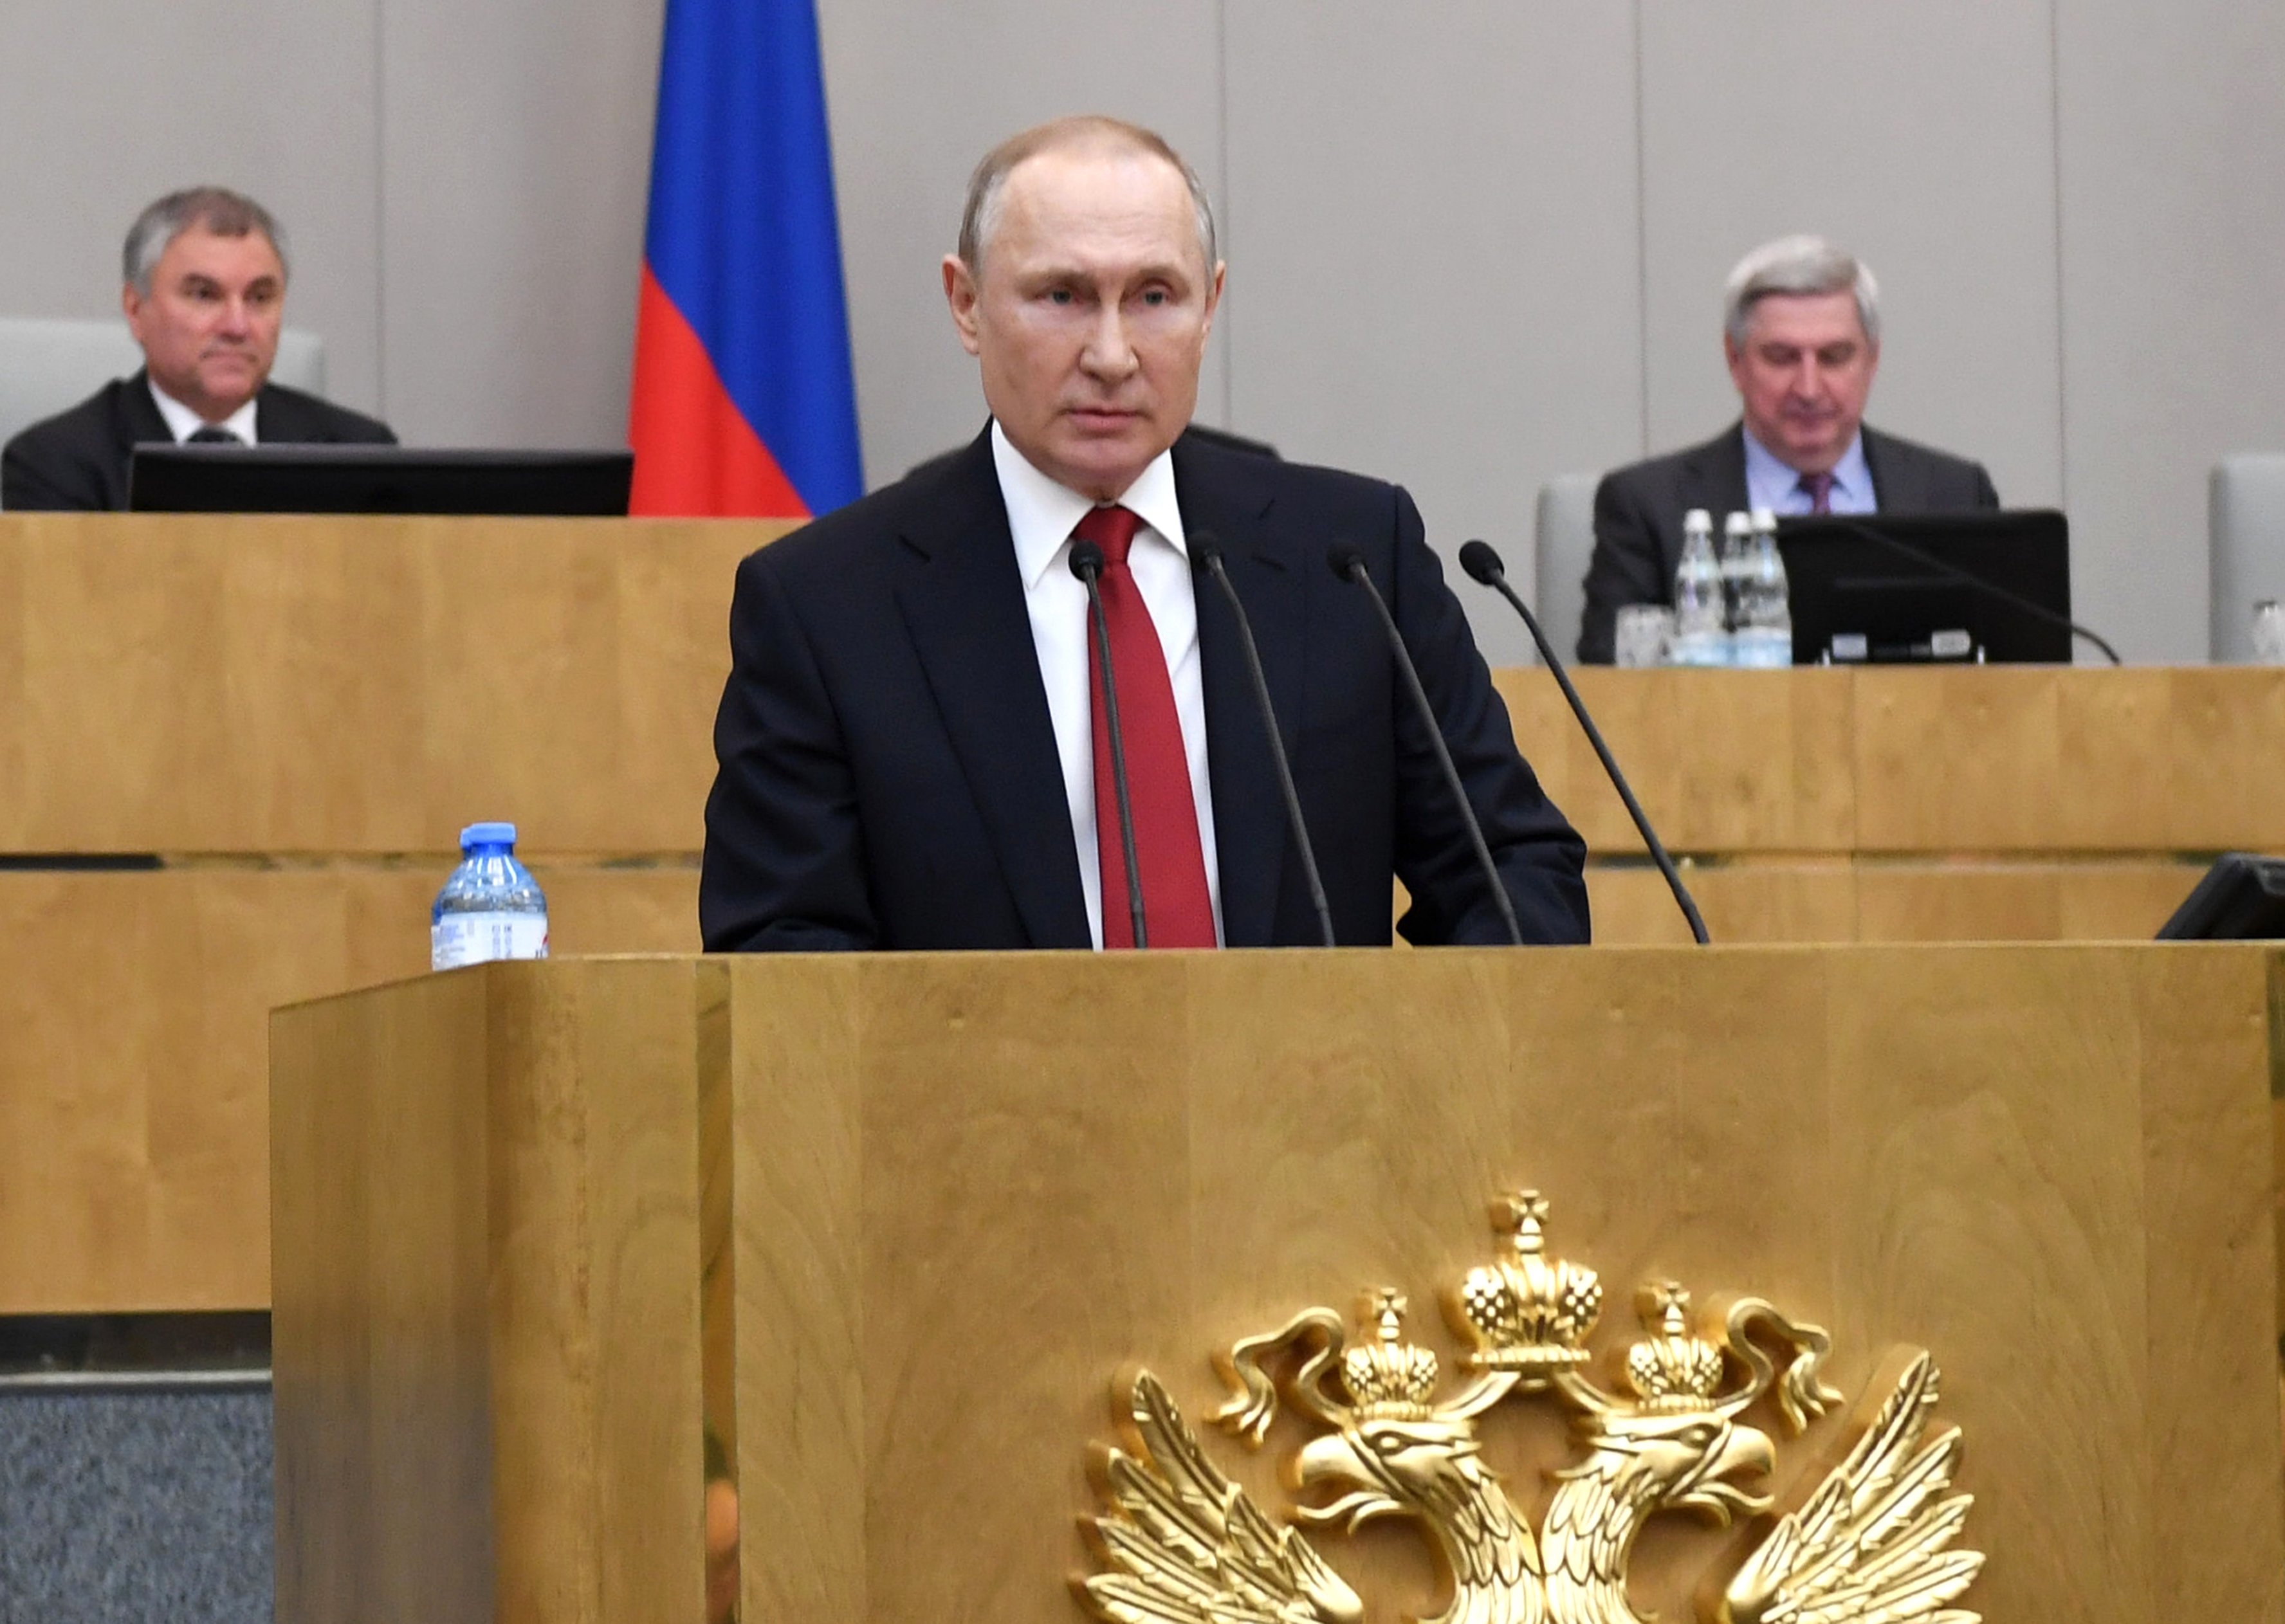 Vladimir Putin Just Made Himself President For Life The World Should Watch Out Trudy Rubin